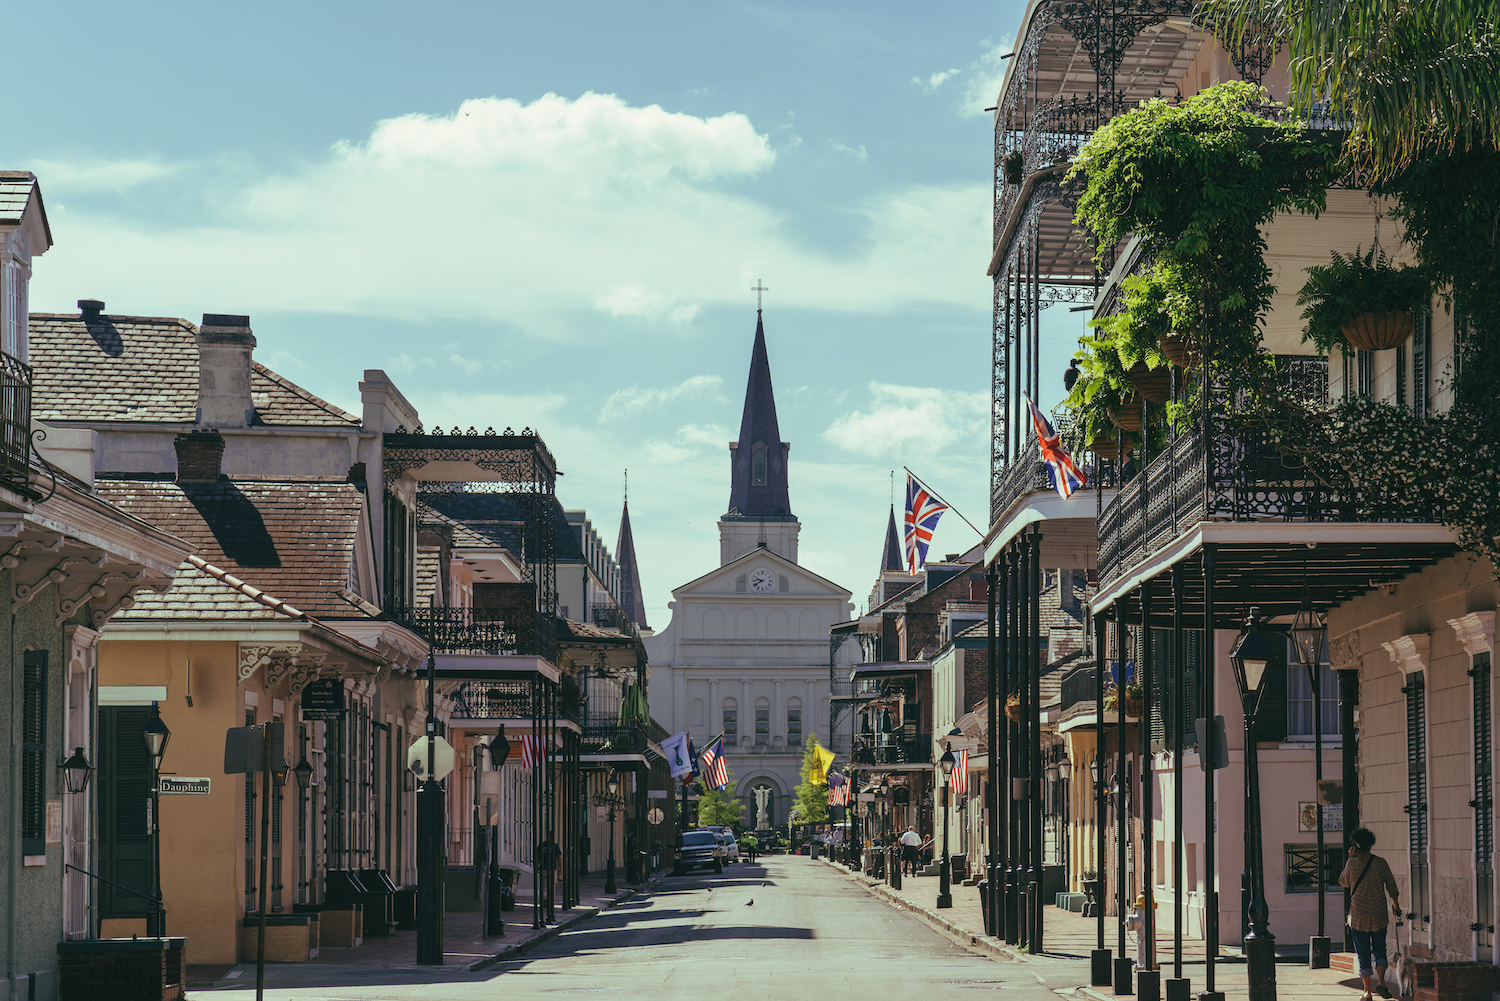 Take a tour of the French Quarter